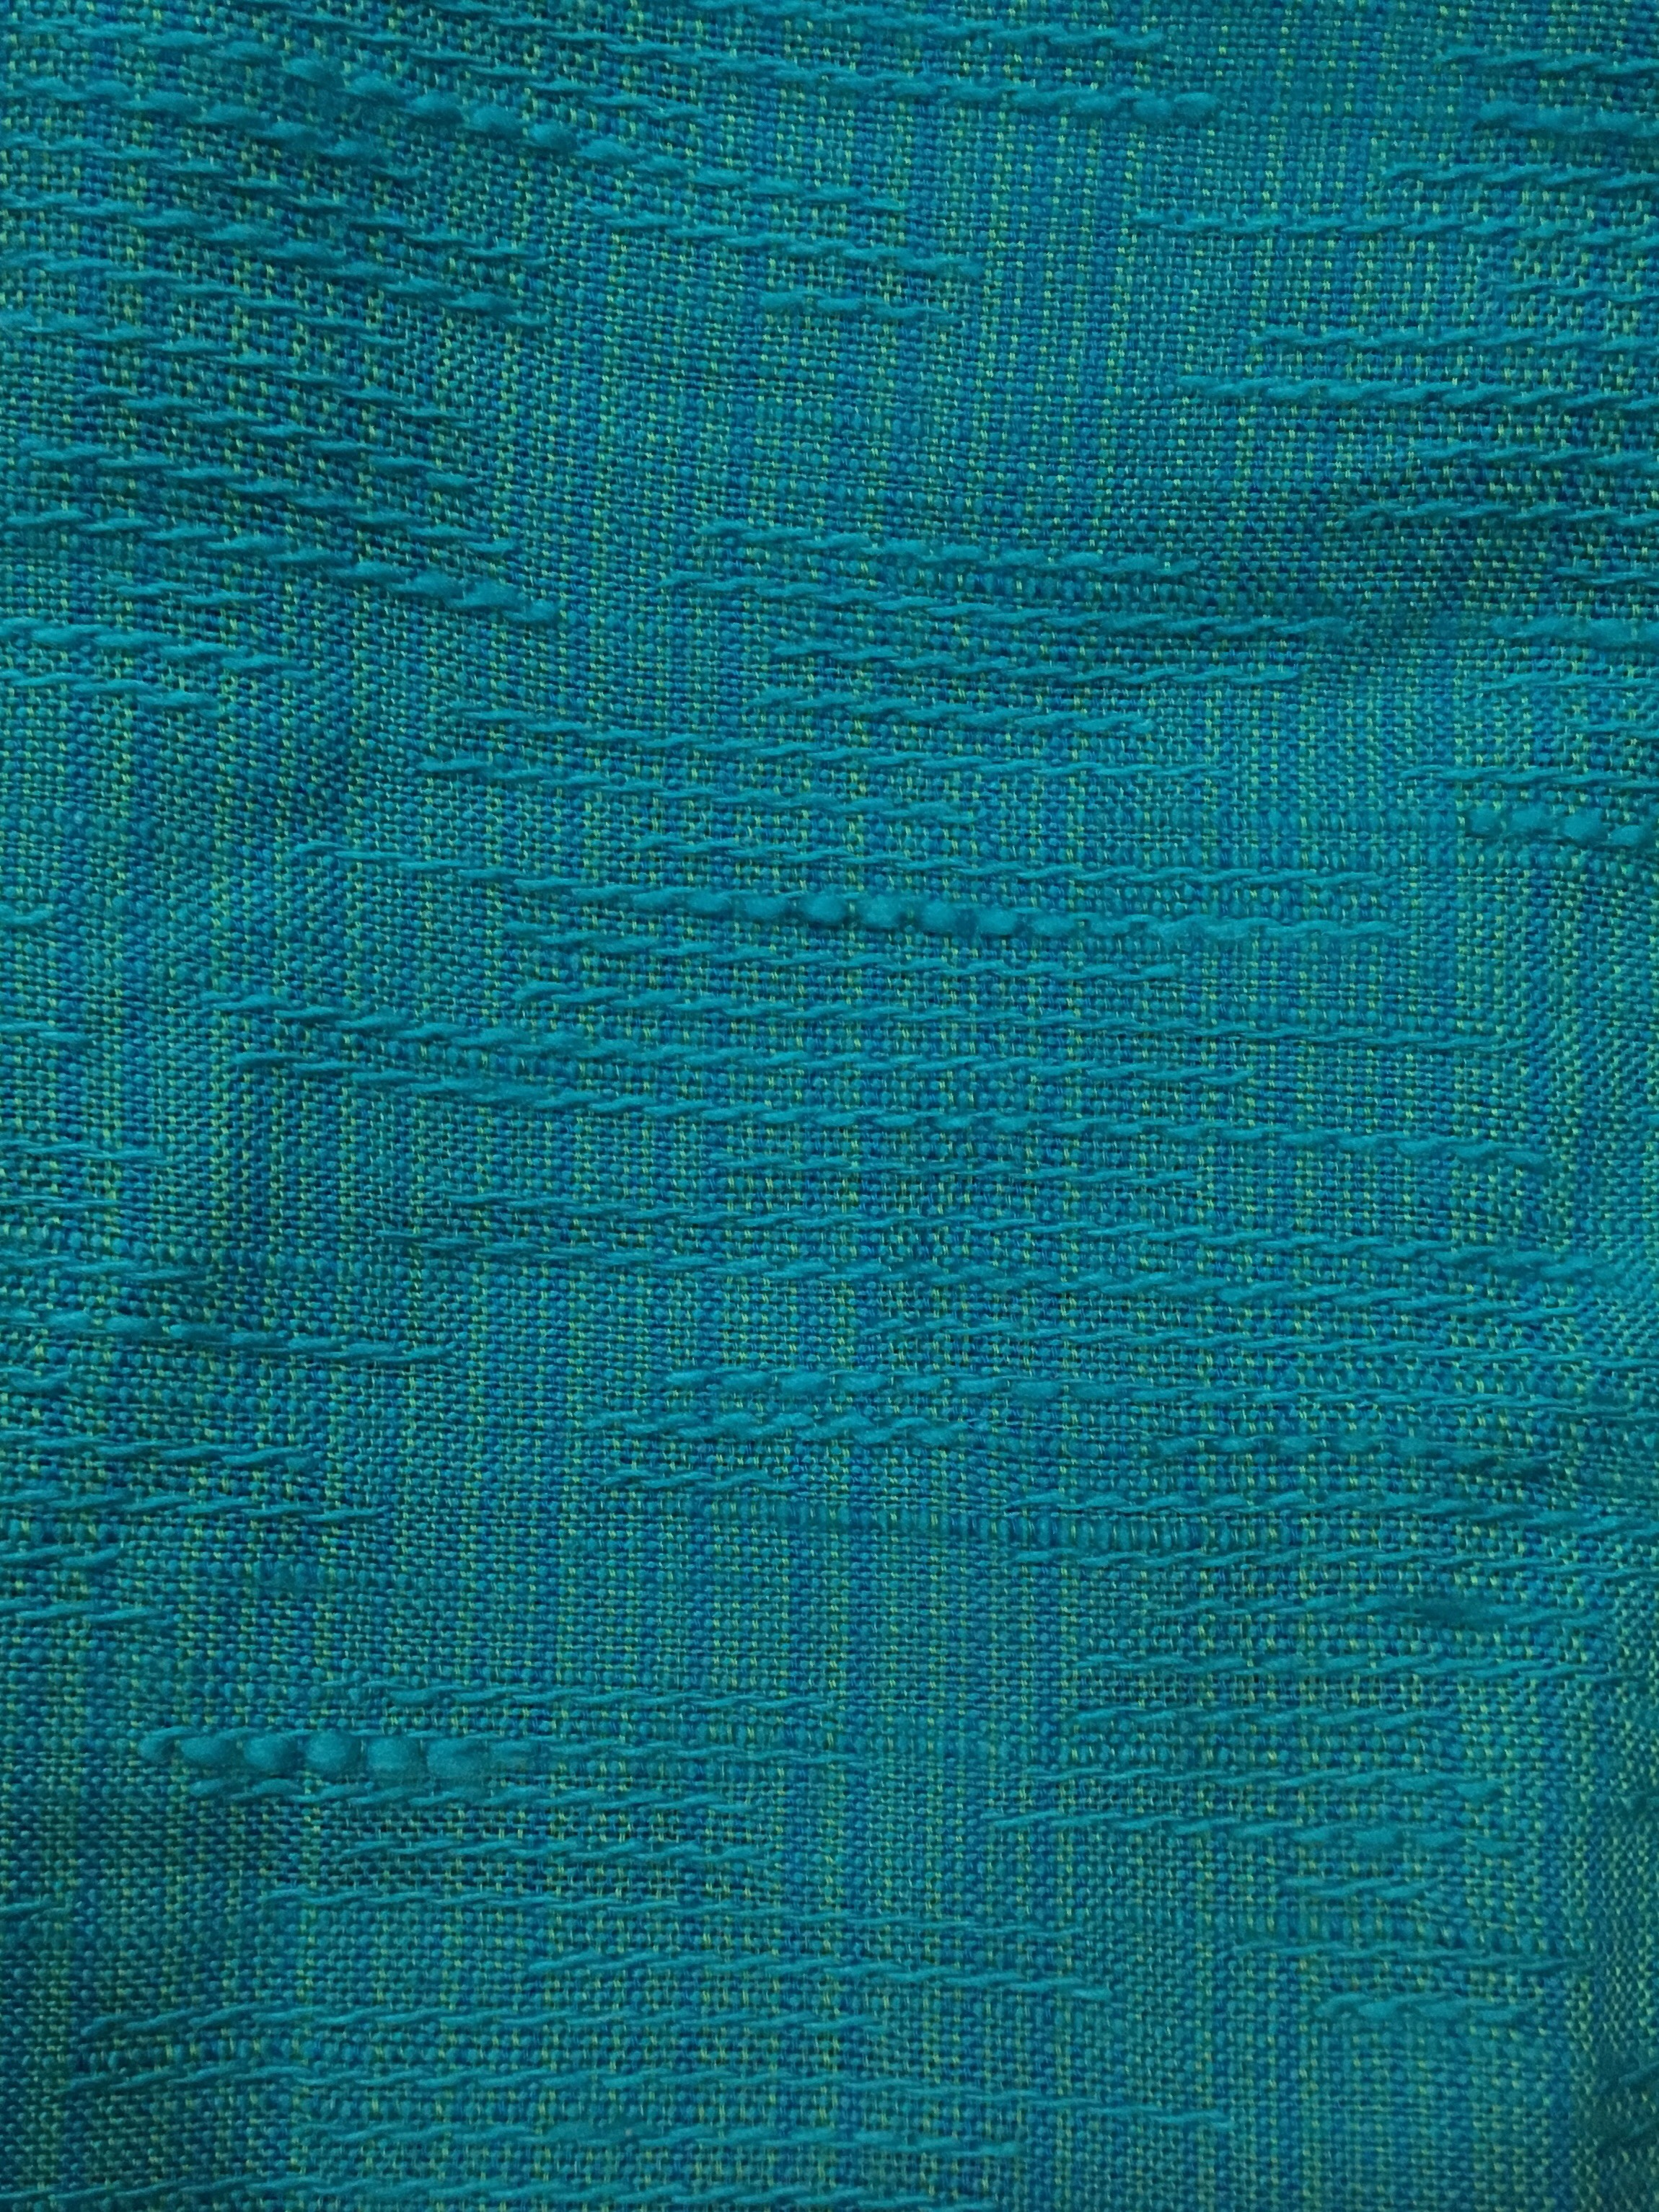 Turquoise Faded Retro Woven Textured